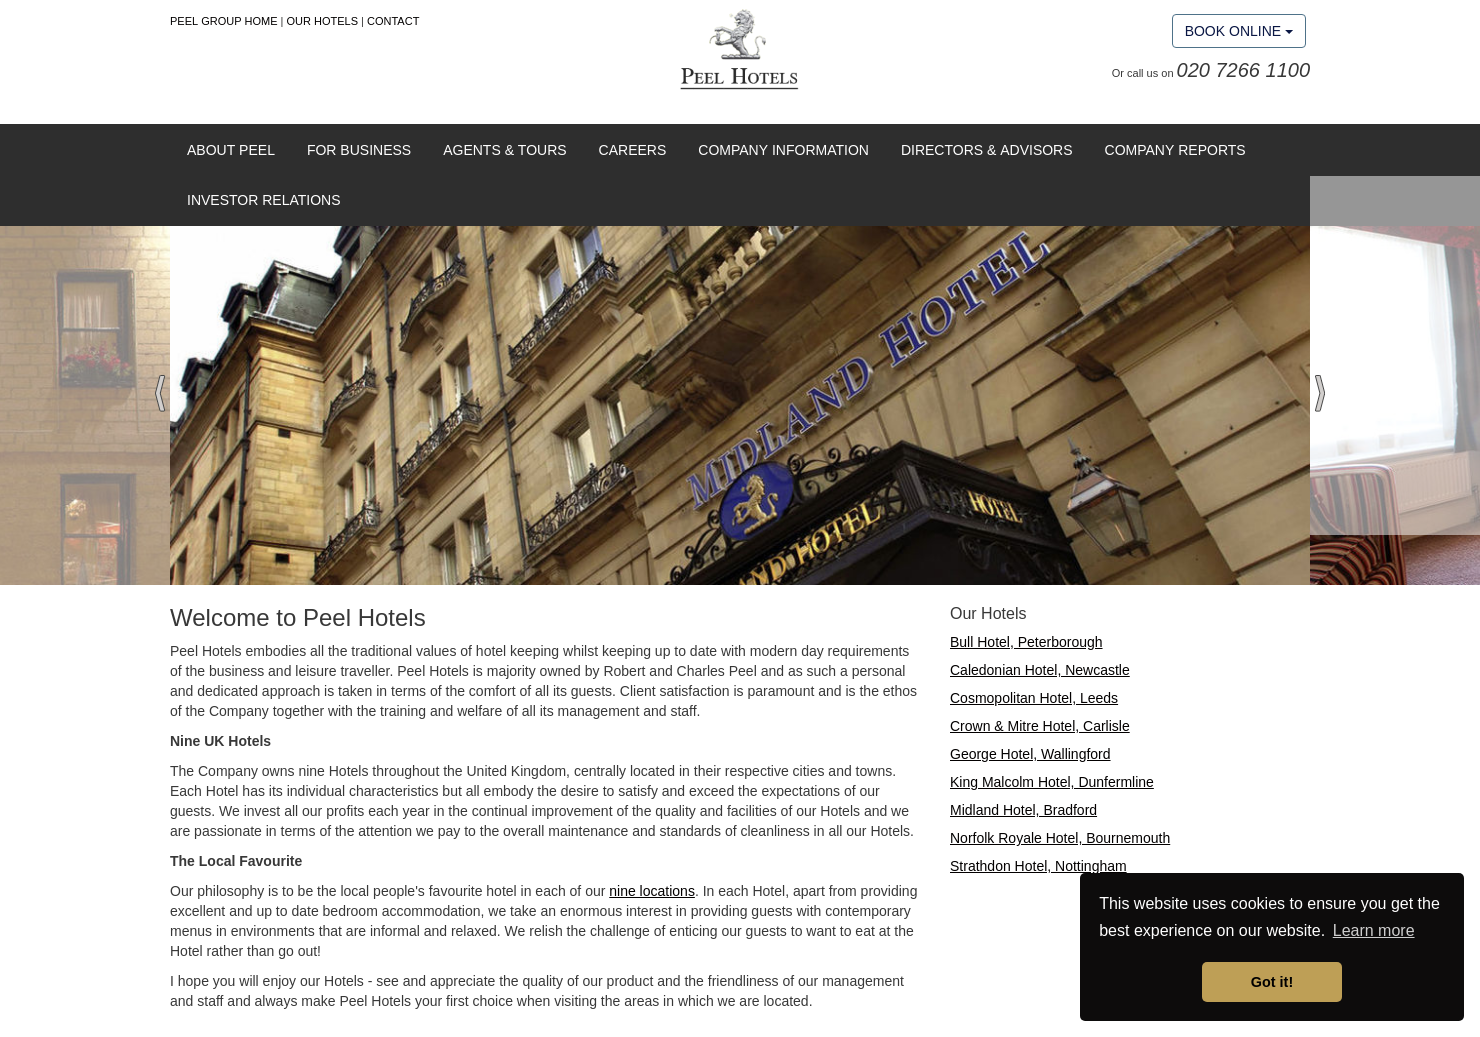 Peel Hotels Home Page